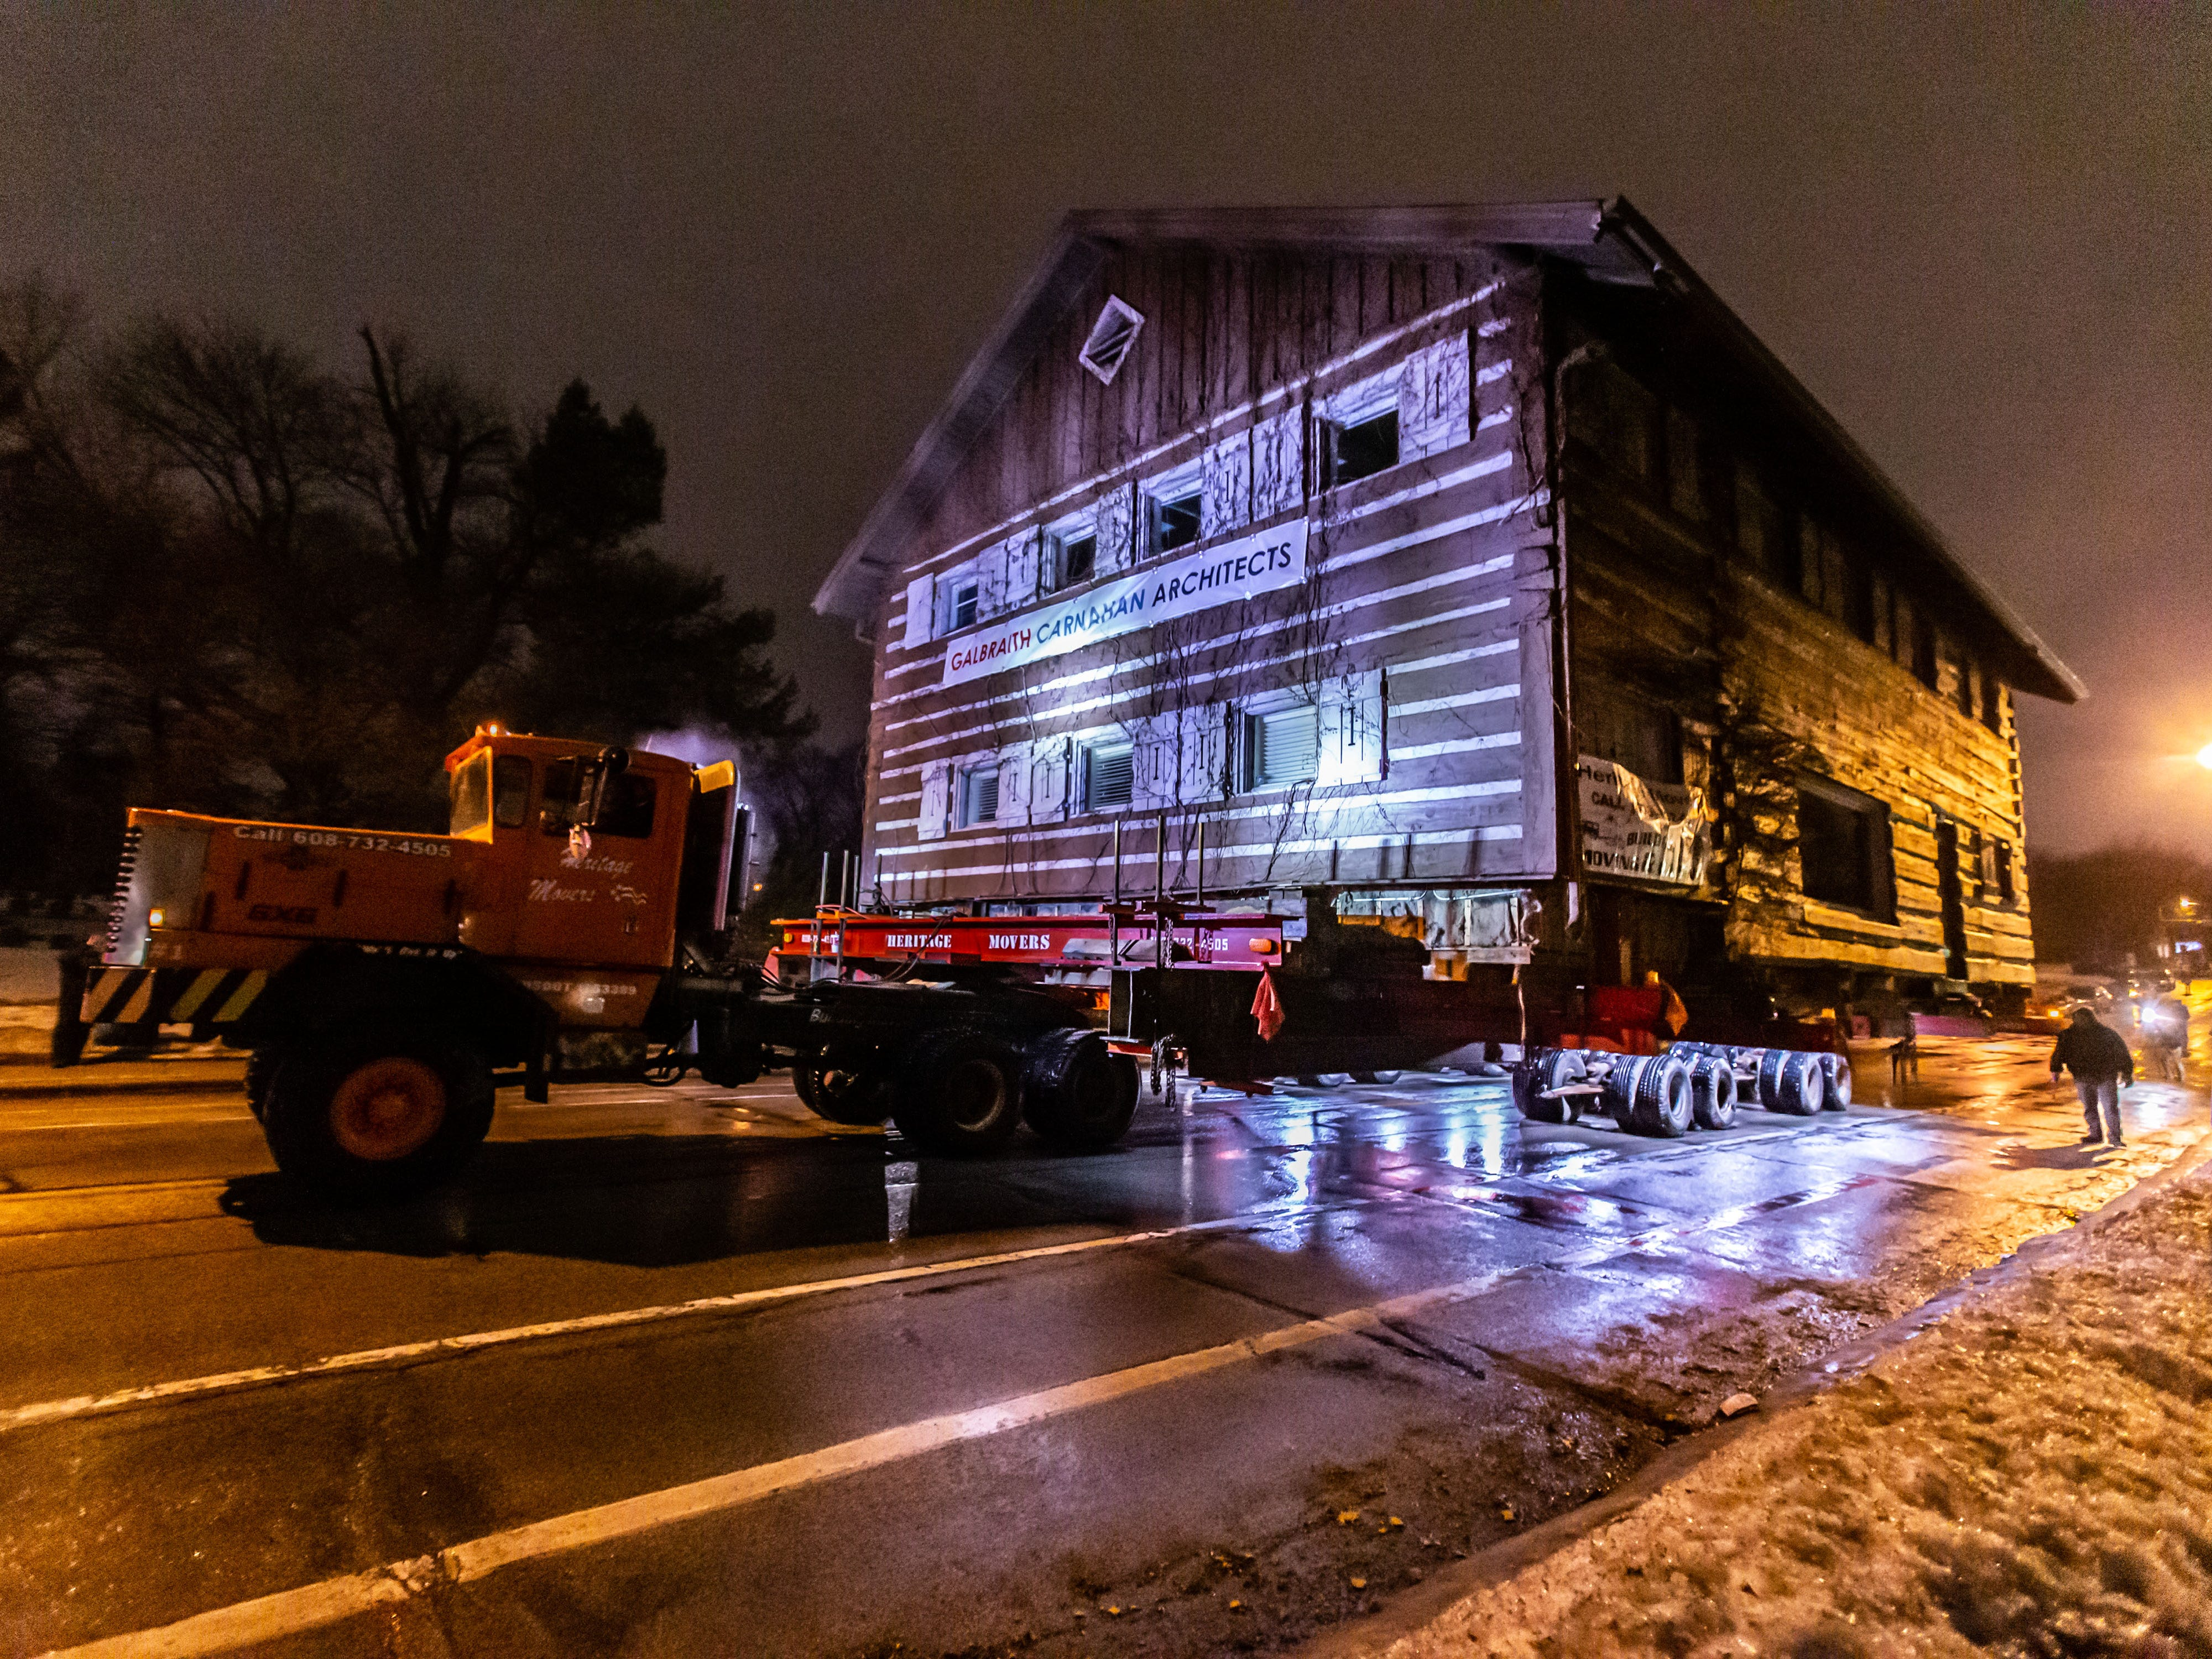 """The """"Tosa Log Cabin"""" rolls down N. Wauwatosa Ave. on it's journey to 6404 W. North Ave. on Wednesday evening, March 13, 2019. The cabin is being moved to make way for a three-story apartment complex called the Gallatin Apartments."""